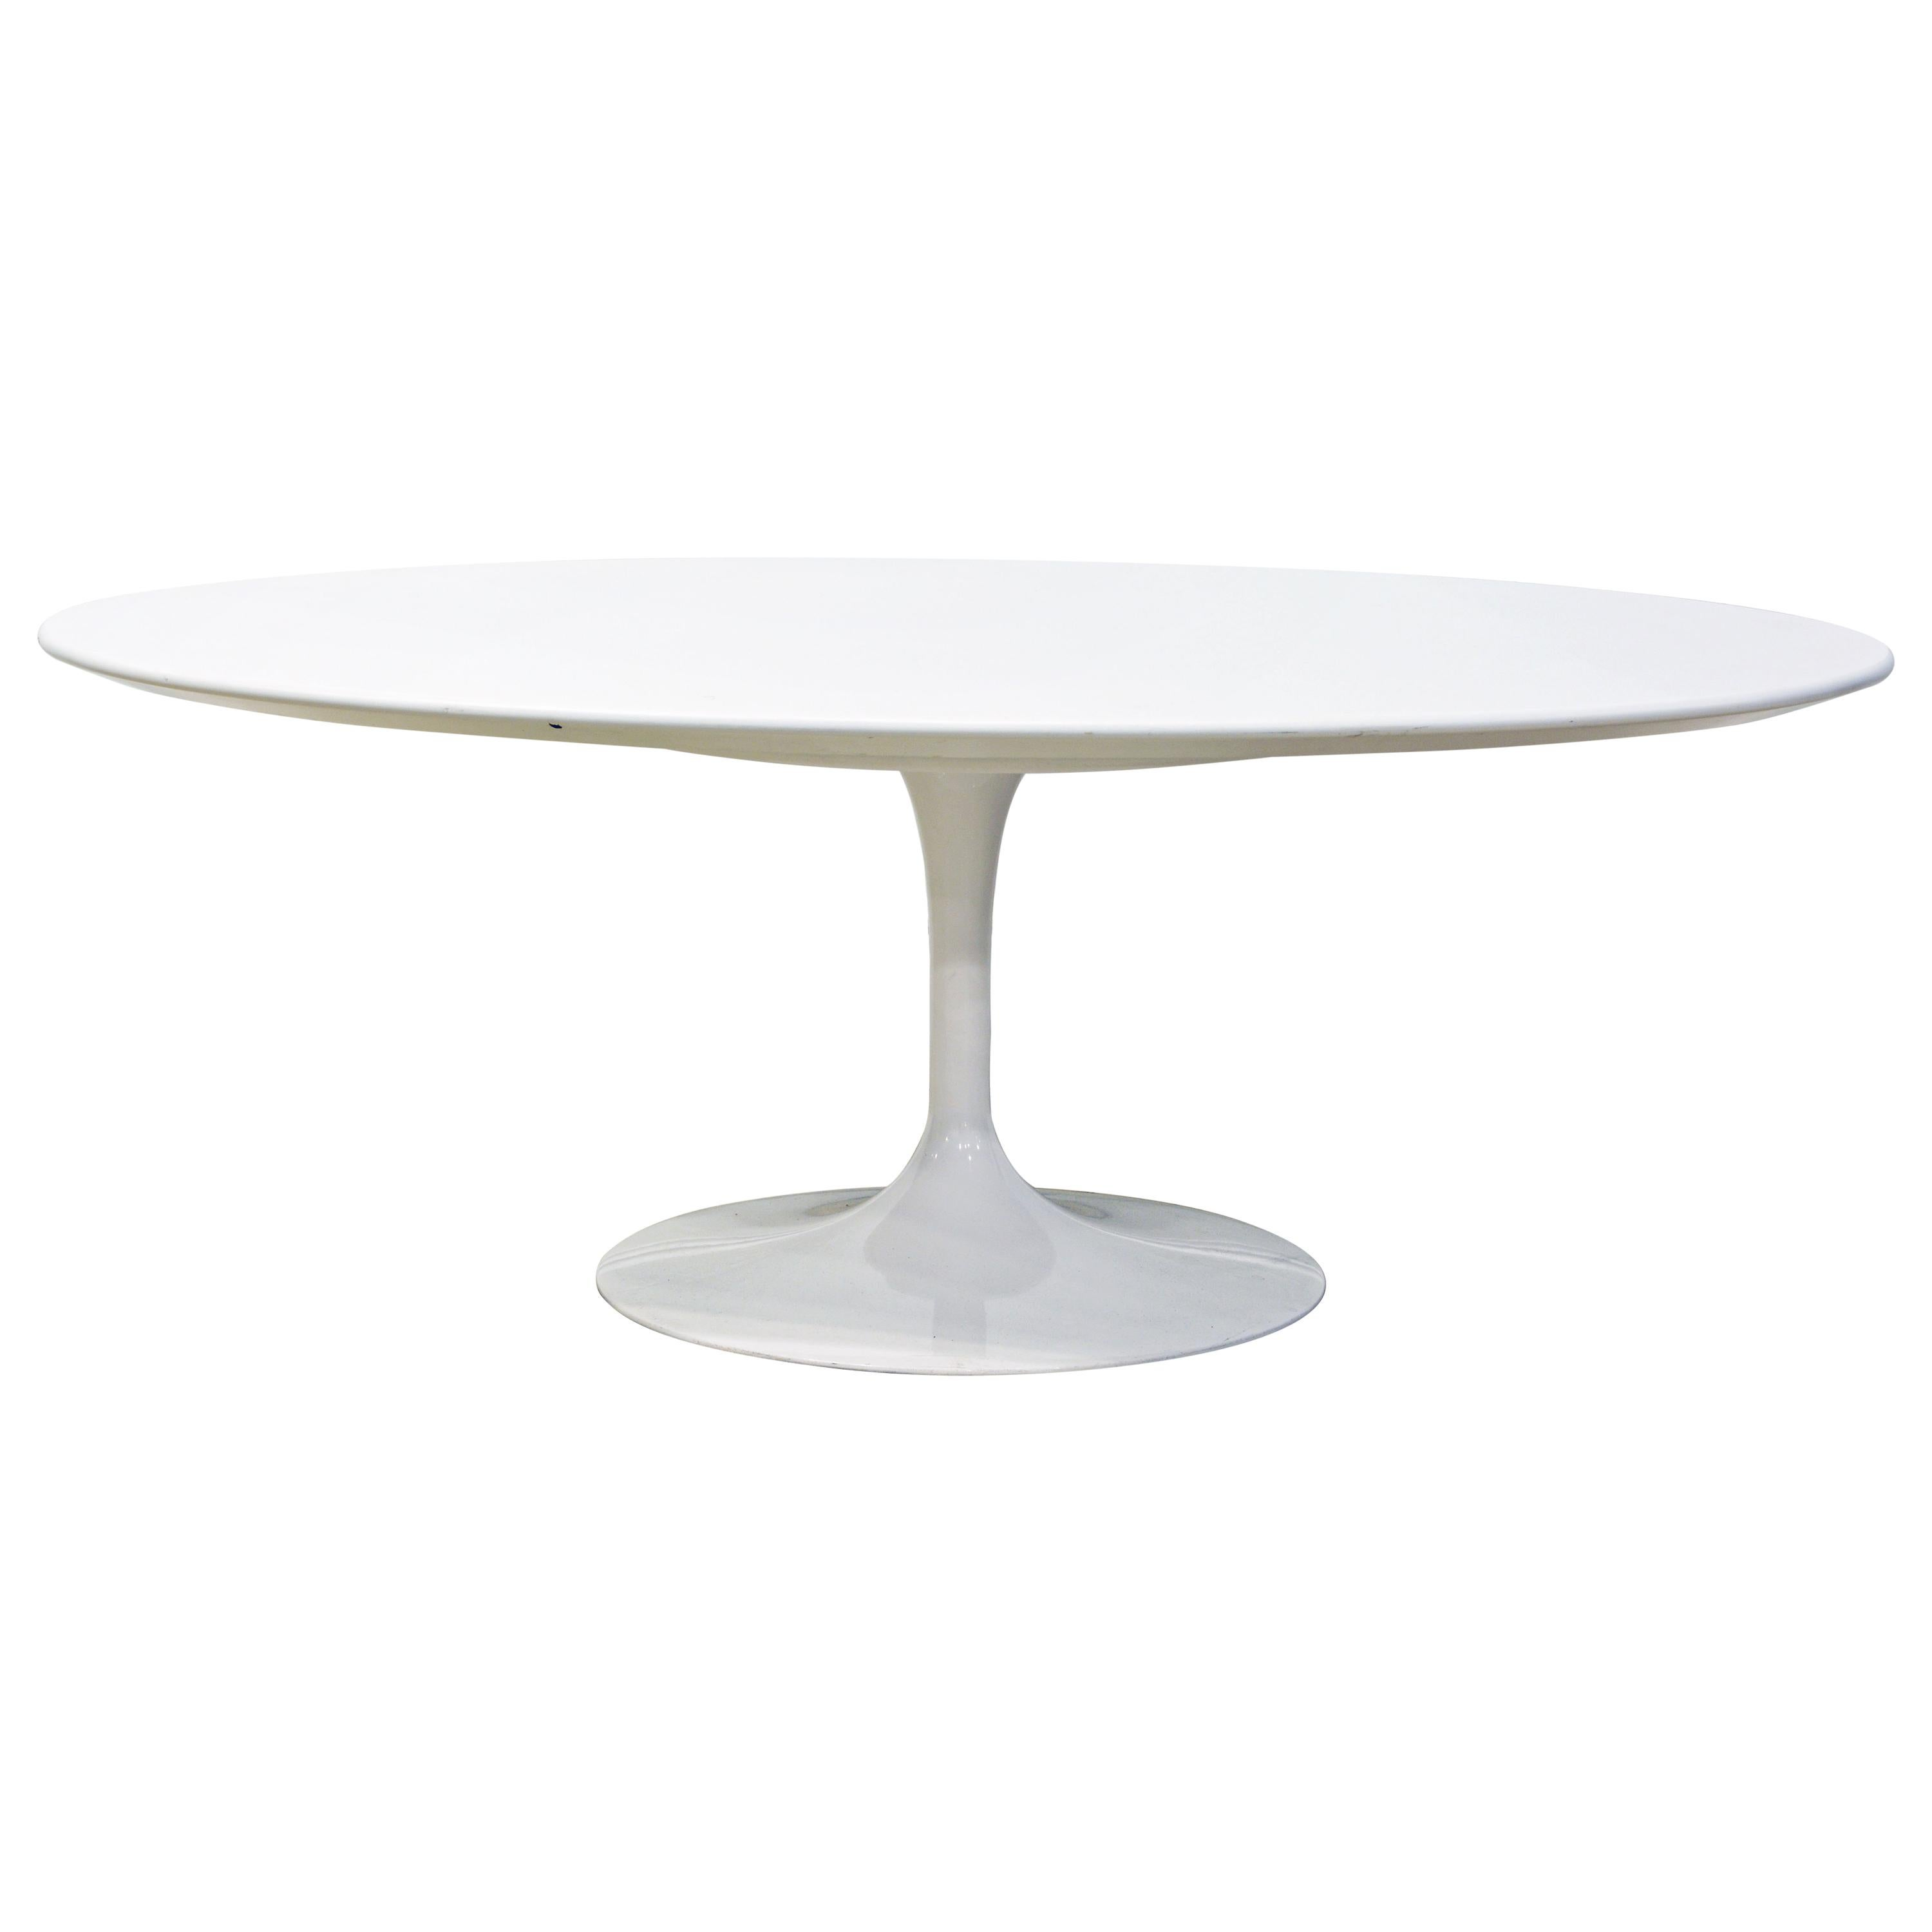 Ordinaire White Oval Tulip Coffee Table By Eero Saarinen For Knoll, Label For Sale